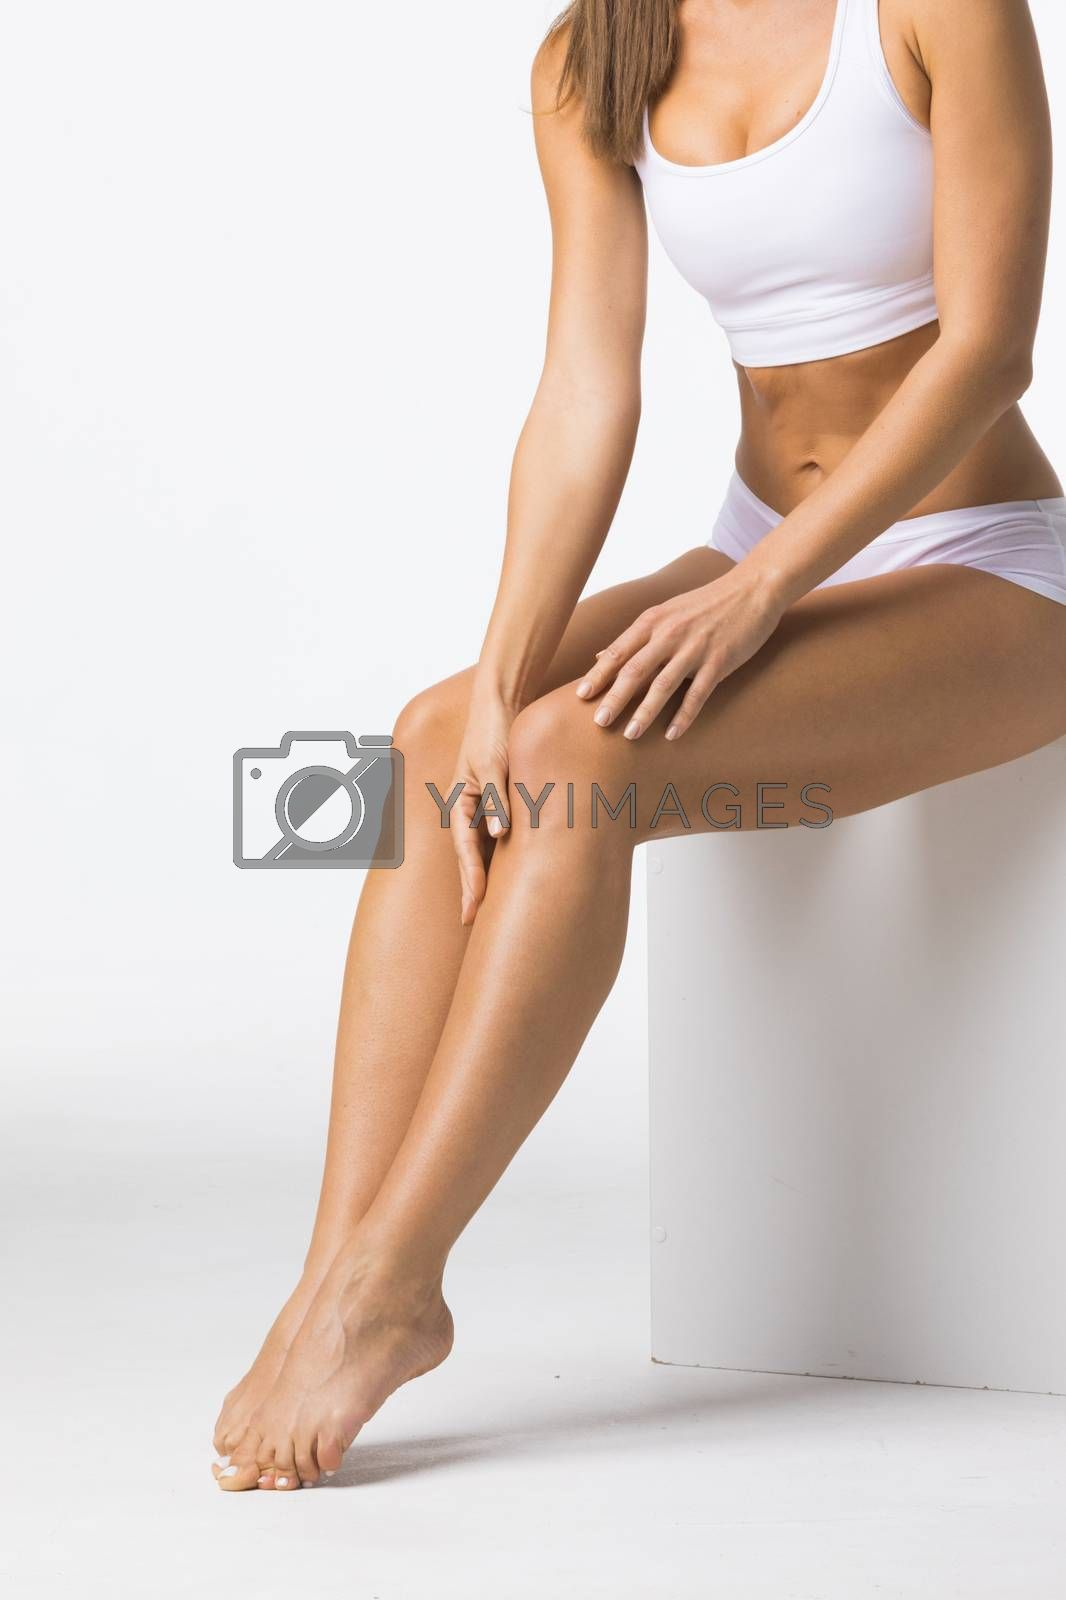 Young beautiful woman in white cotton underwear sitting and touching legs